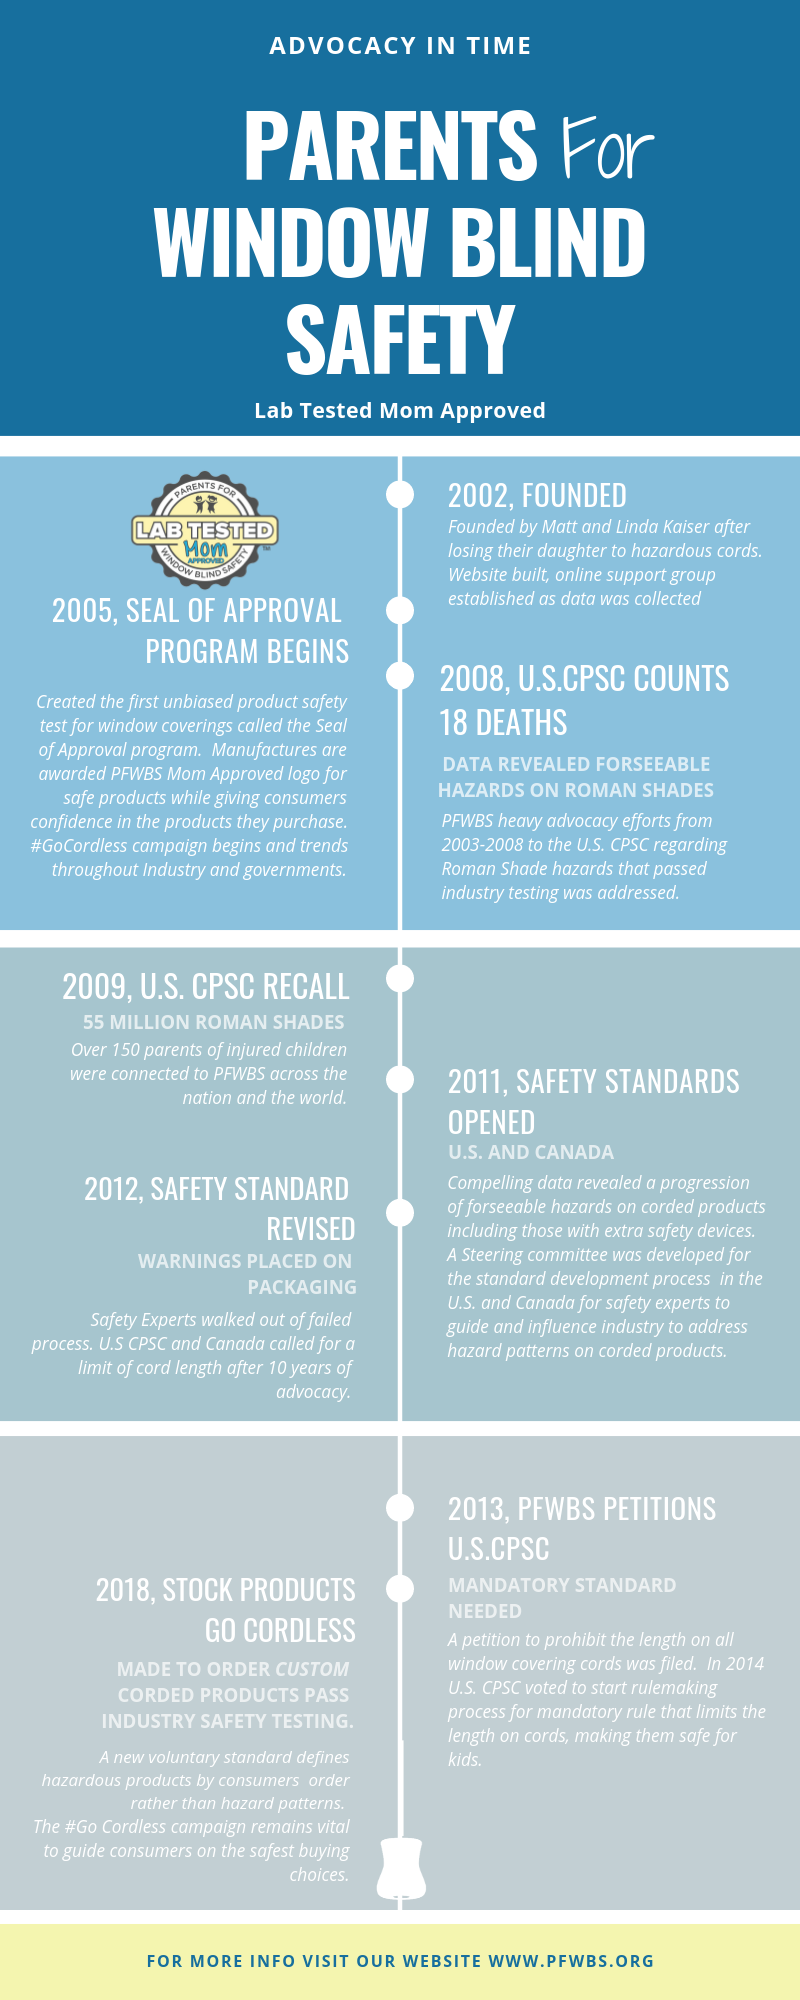 Effective Safety Standards Creates Safer Products